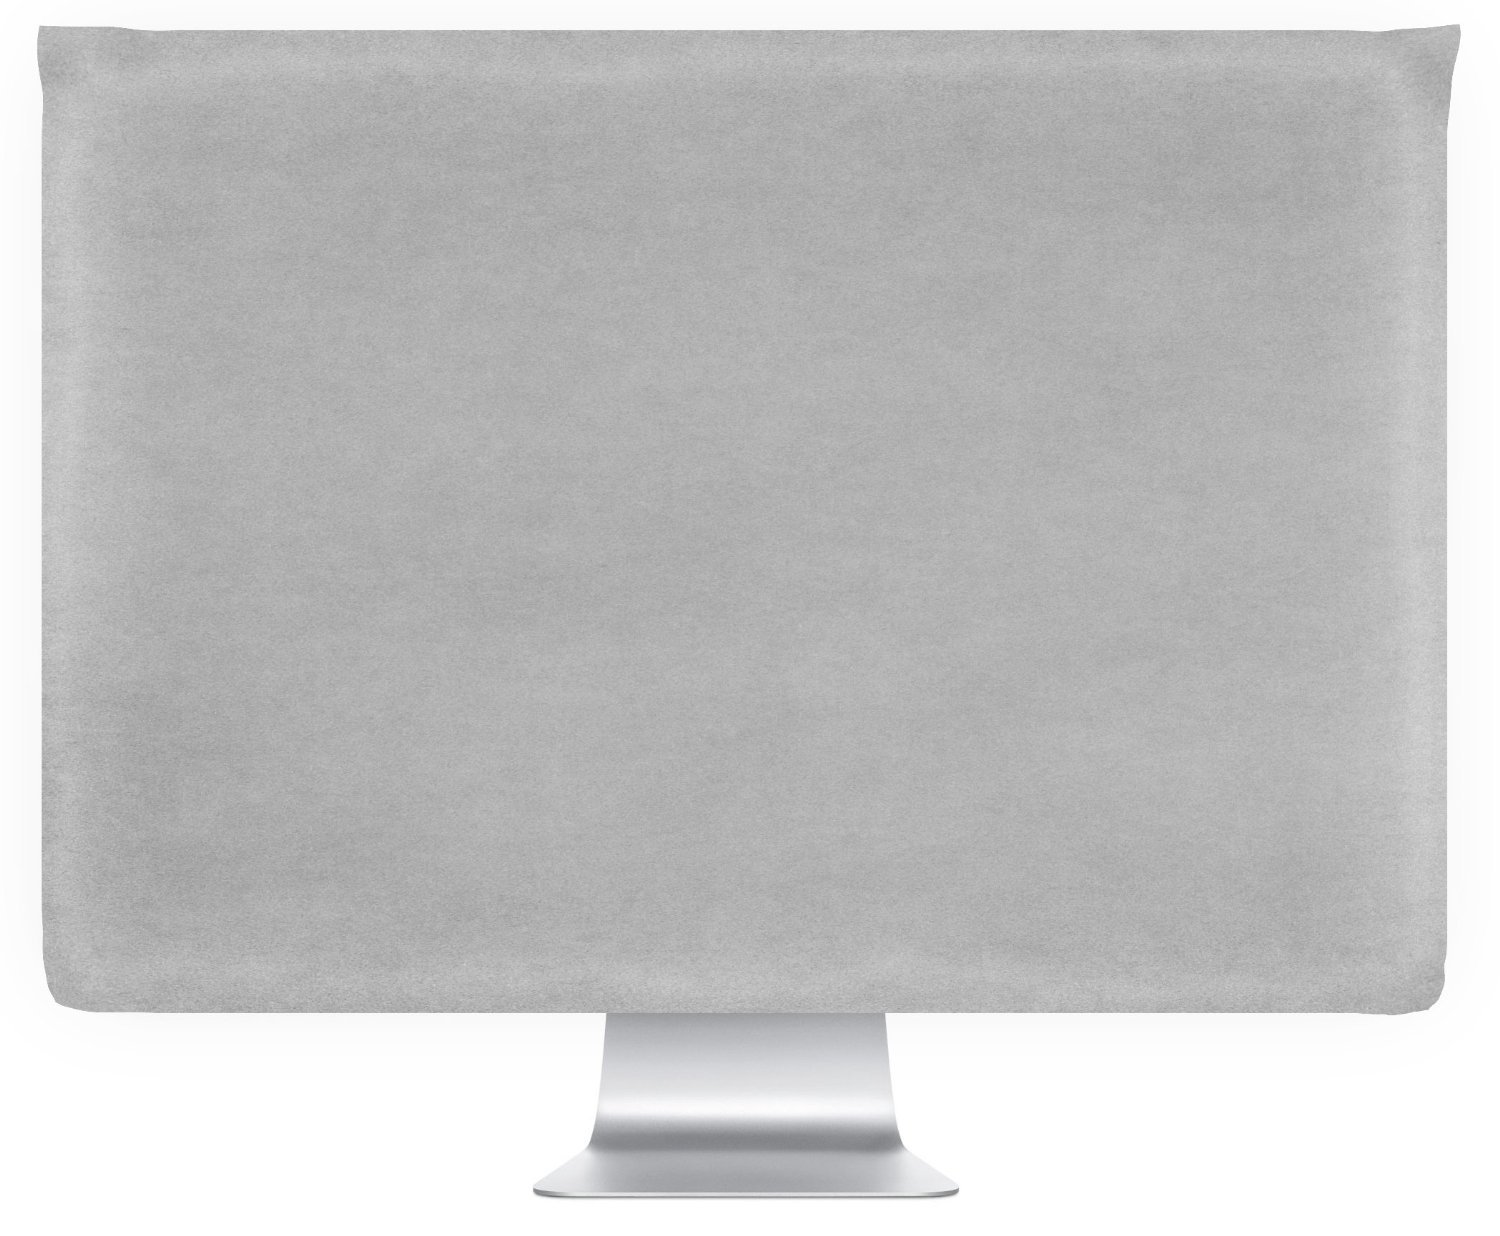 Lavolta Dust Cover for Apple iMac 27-inch - Screen Monitor Protector Guard for iMac 27'' Retina 5K and previous 27'' models & 27'' Thunderbolt Display - with Pocket for iMac Accessories by Lavolta (Image #5)